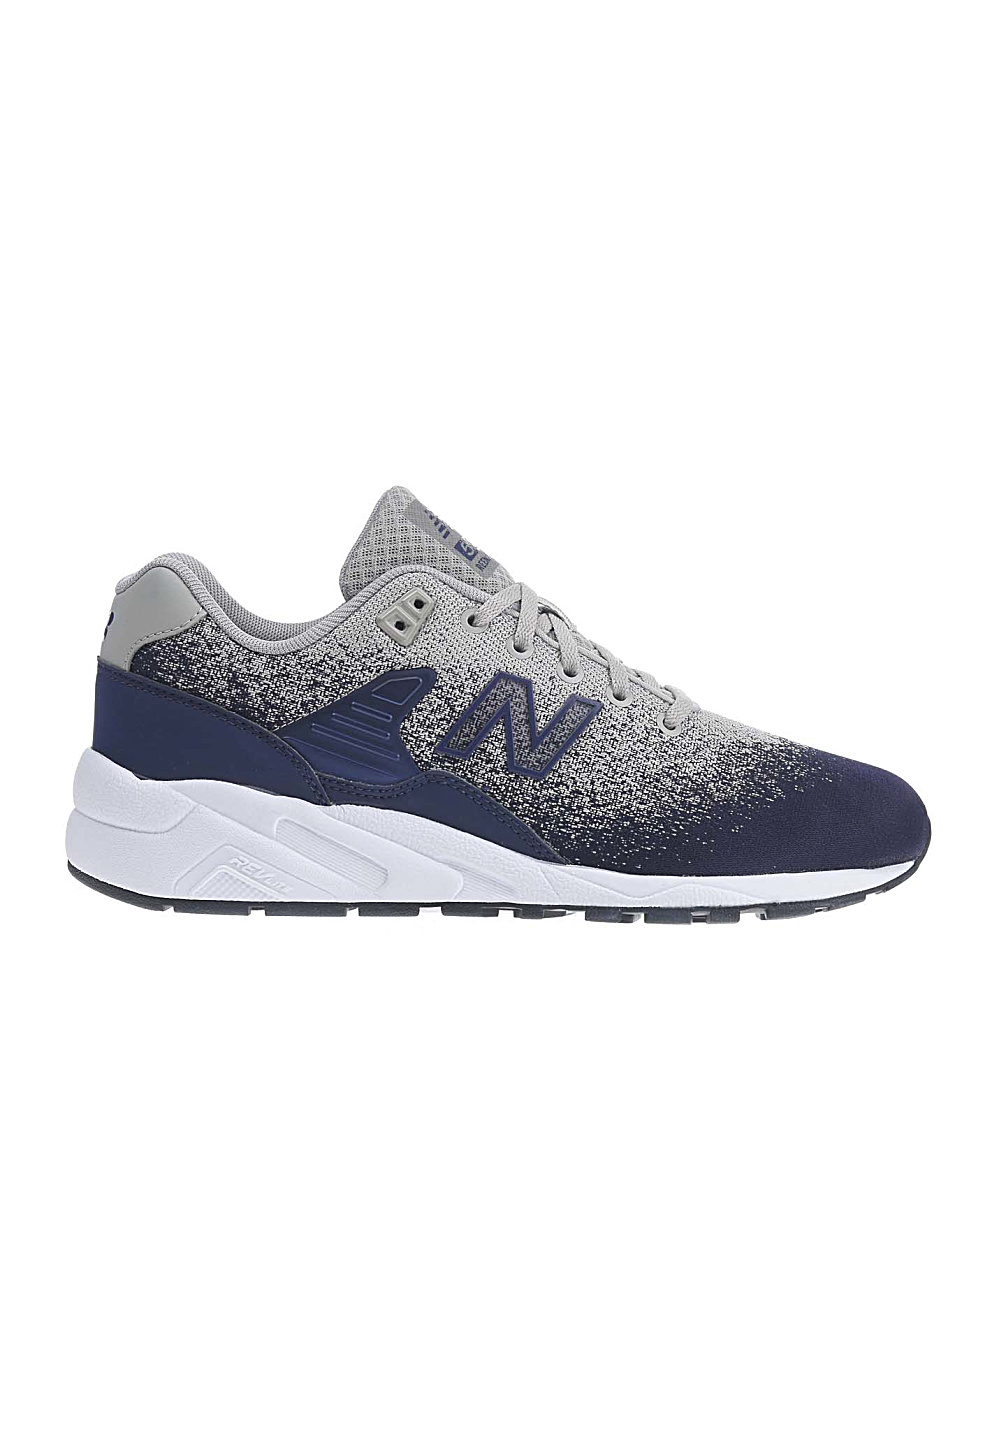 huge selection of 39f5d 78321 NEW BALANCE MRT580 D - Sneakers for Men - Grey